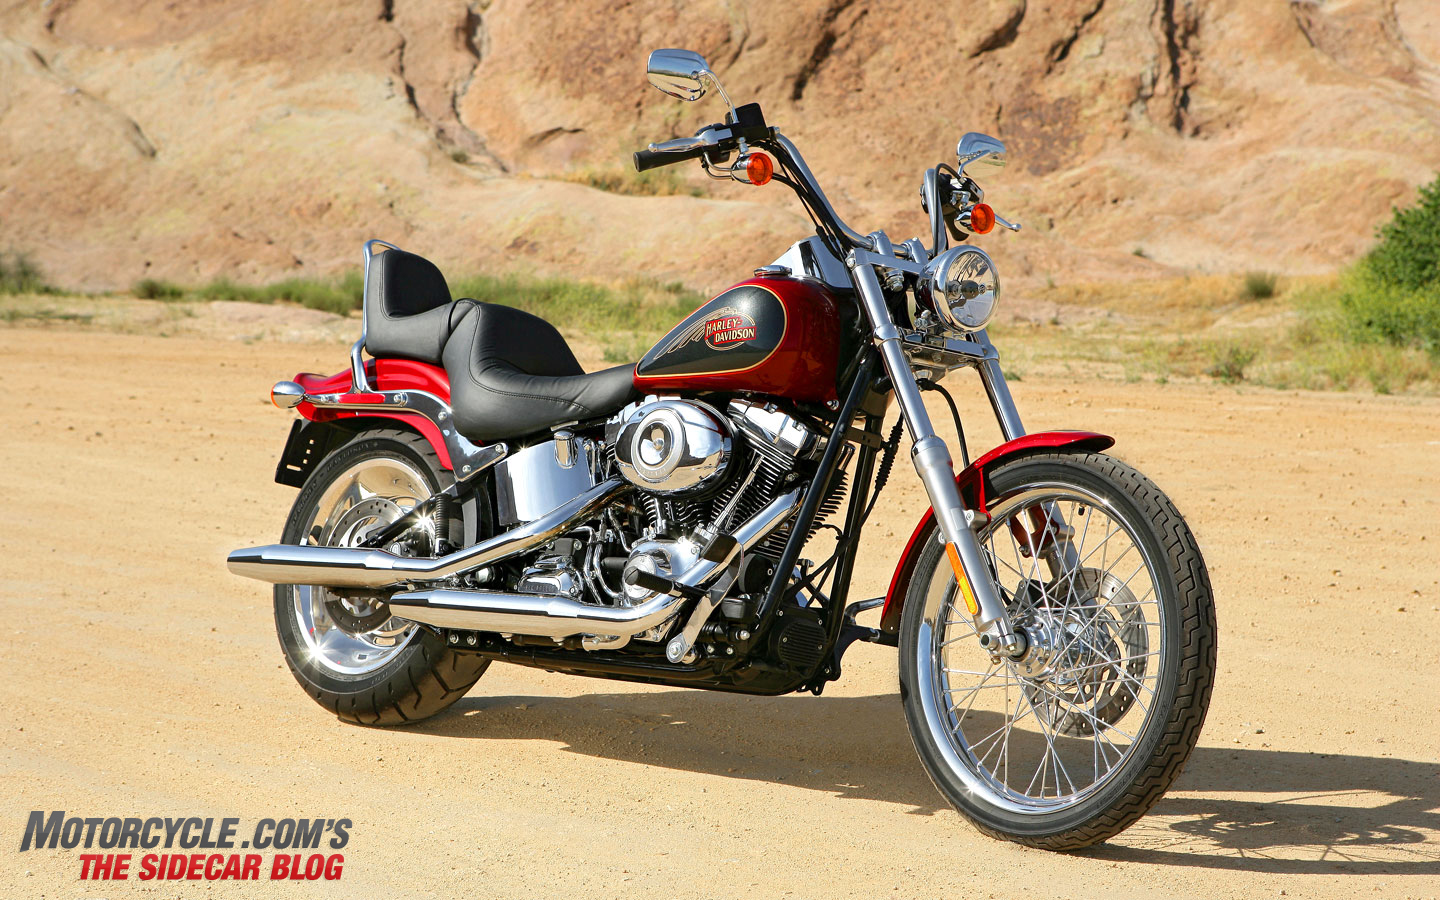 2007-hd-fatboy-1440×900